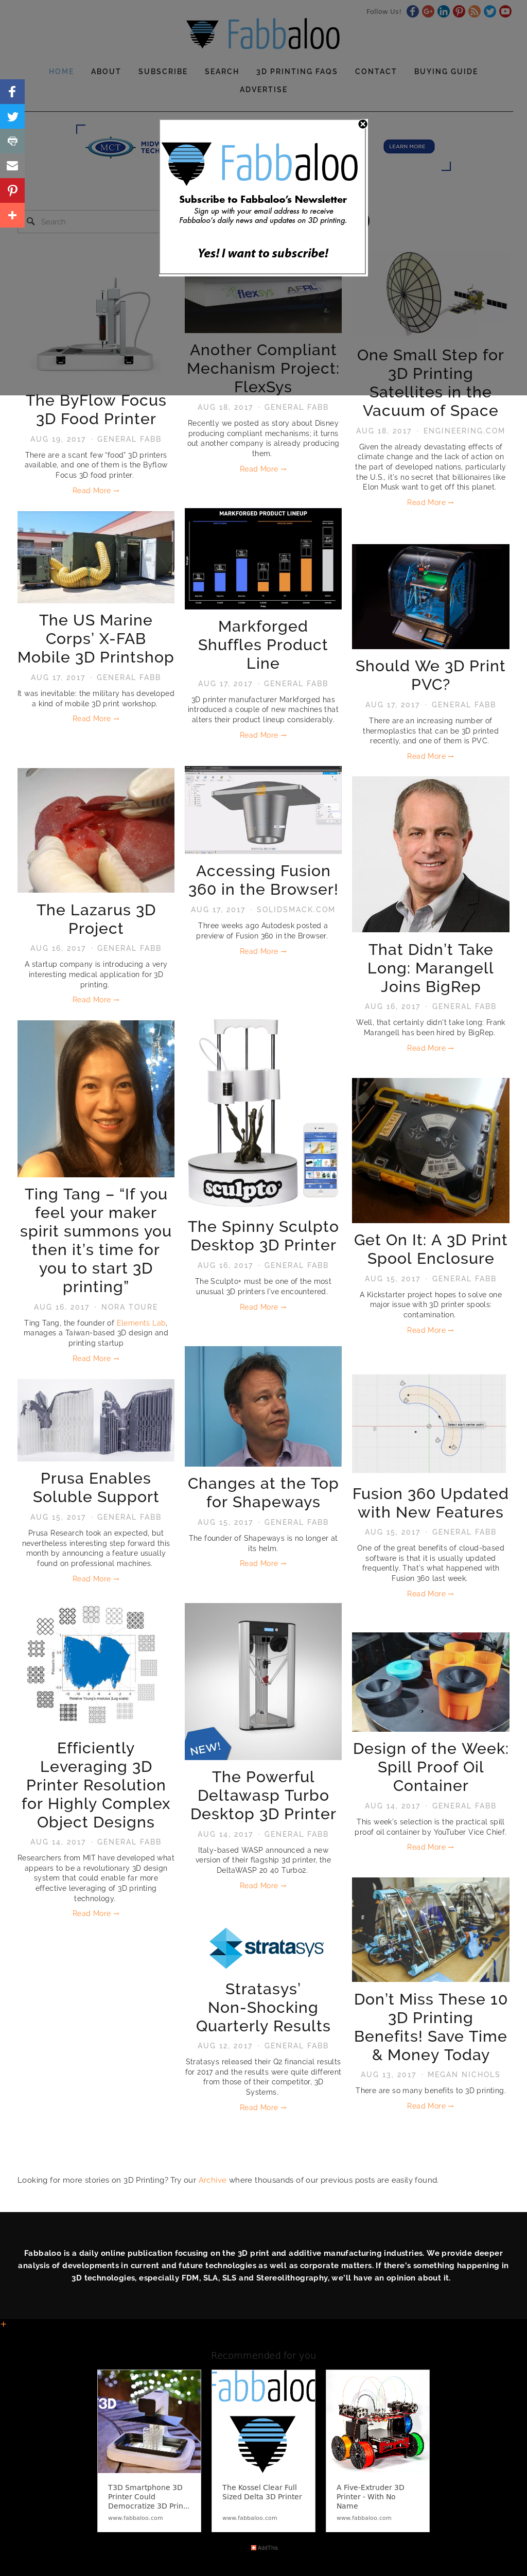 Owler Reports - Fabbaloo Blog Instantly 3D Print Cities with